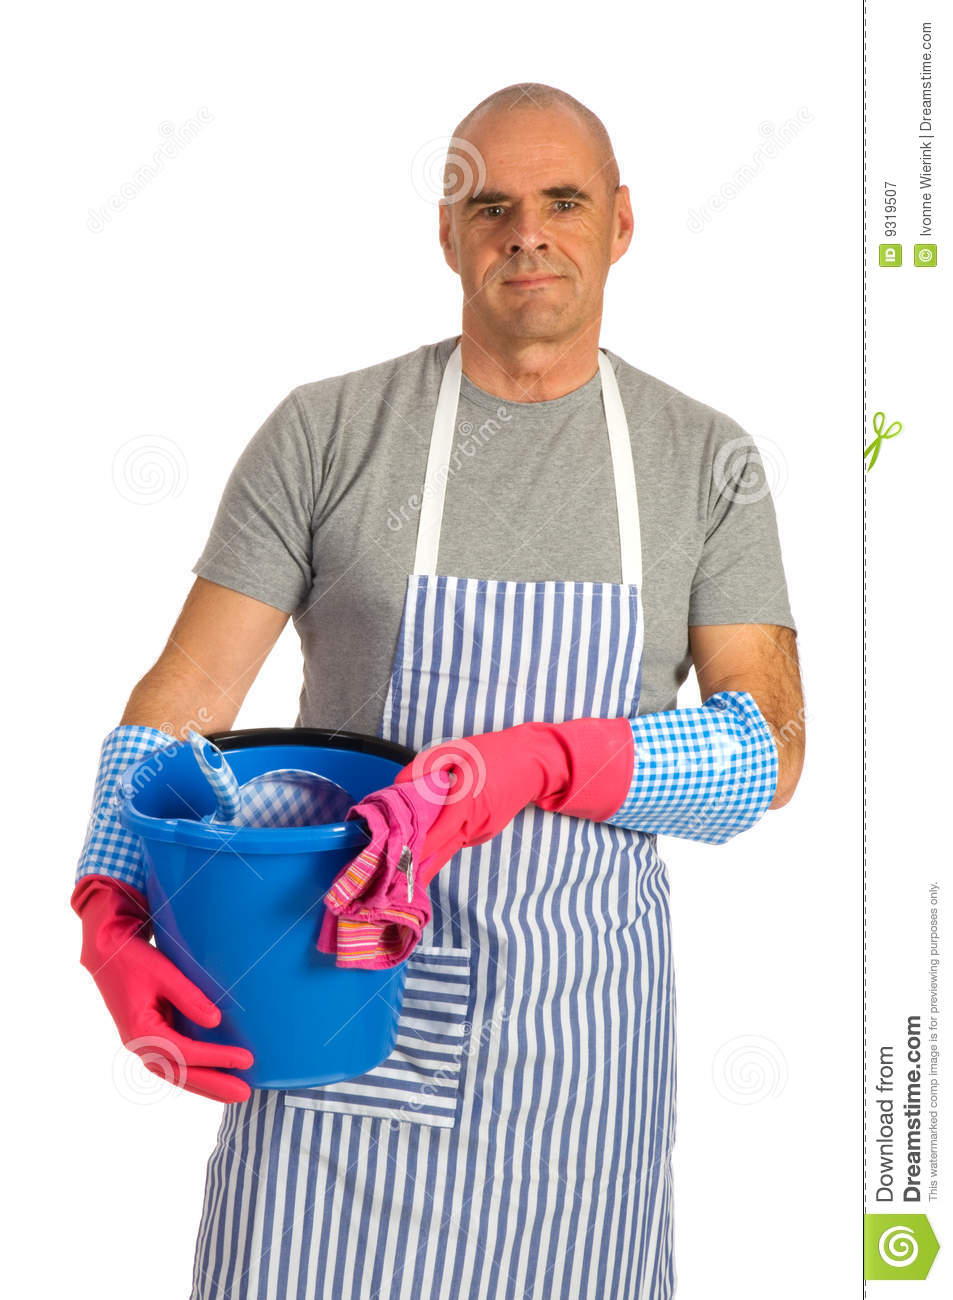 man as house man royalty free stock photography image 9319507